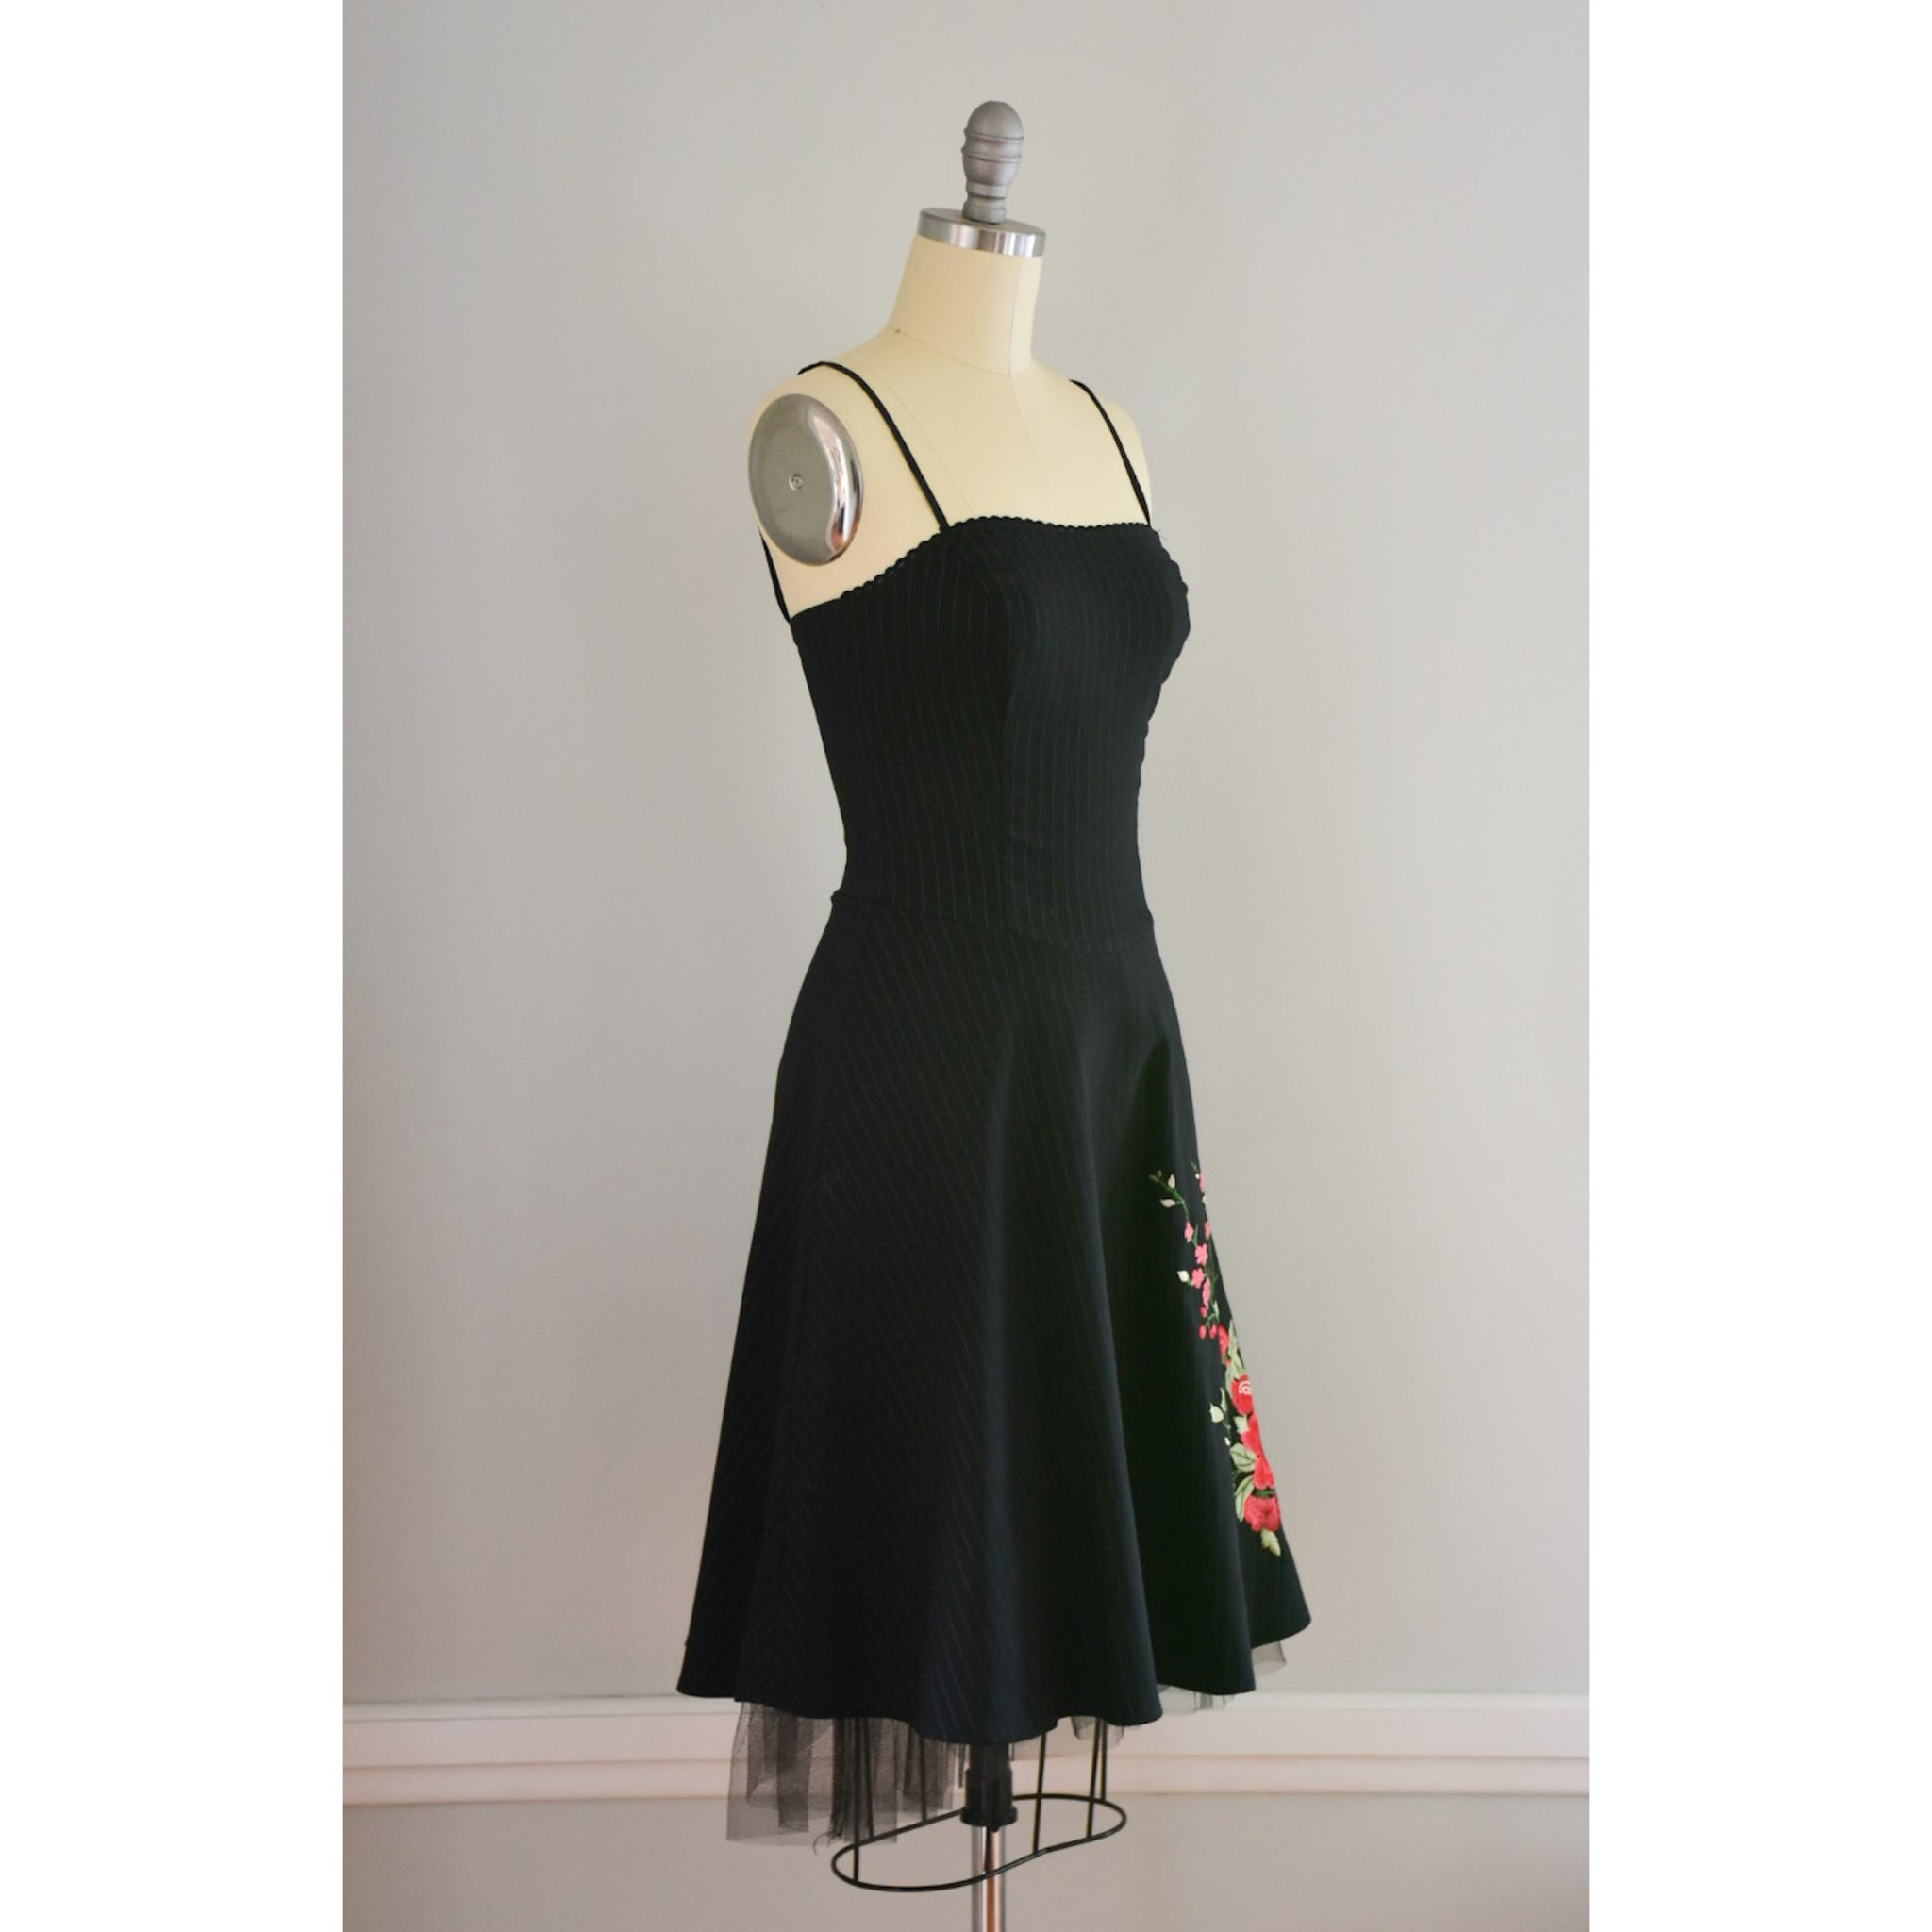 Vintage La Belle Dress from DuncanLovesTess.com